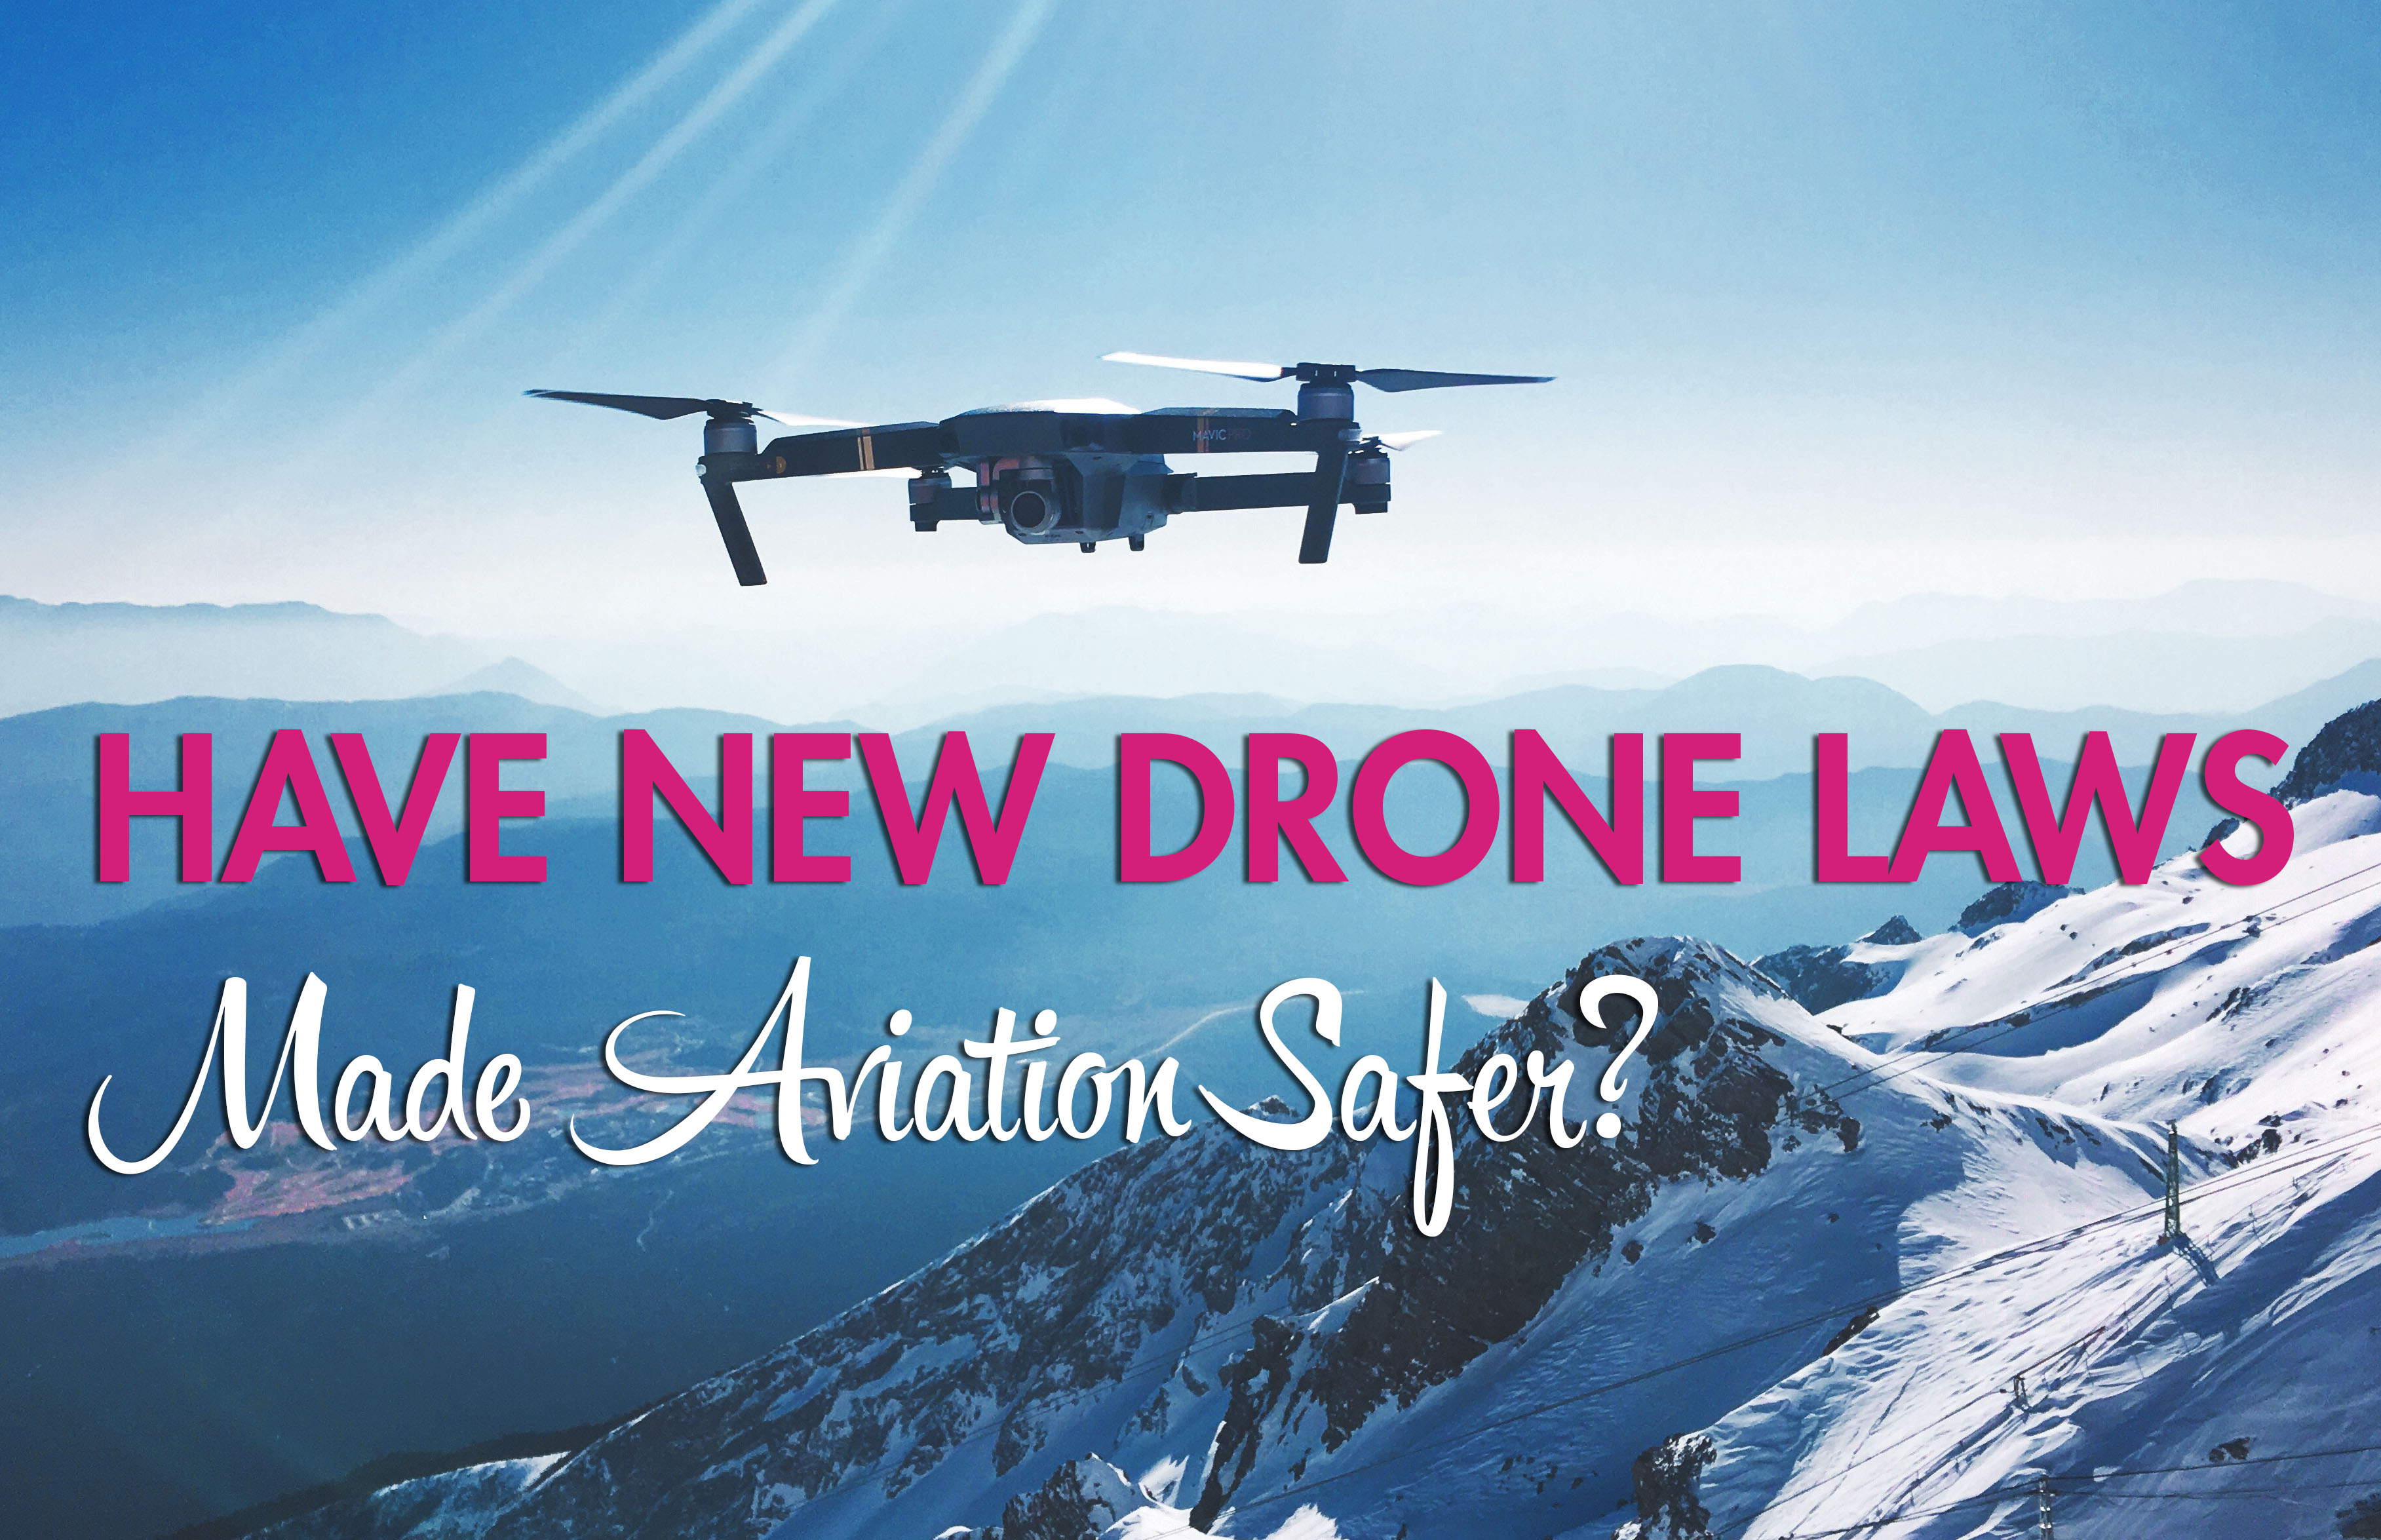 have new drone laws made aviation safer